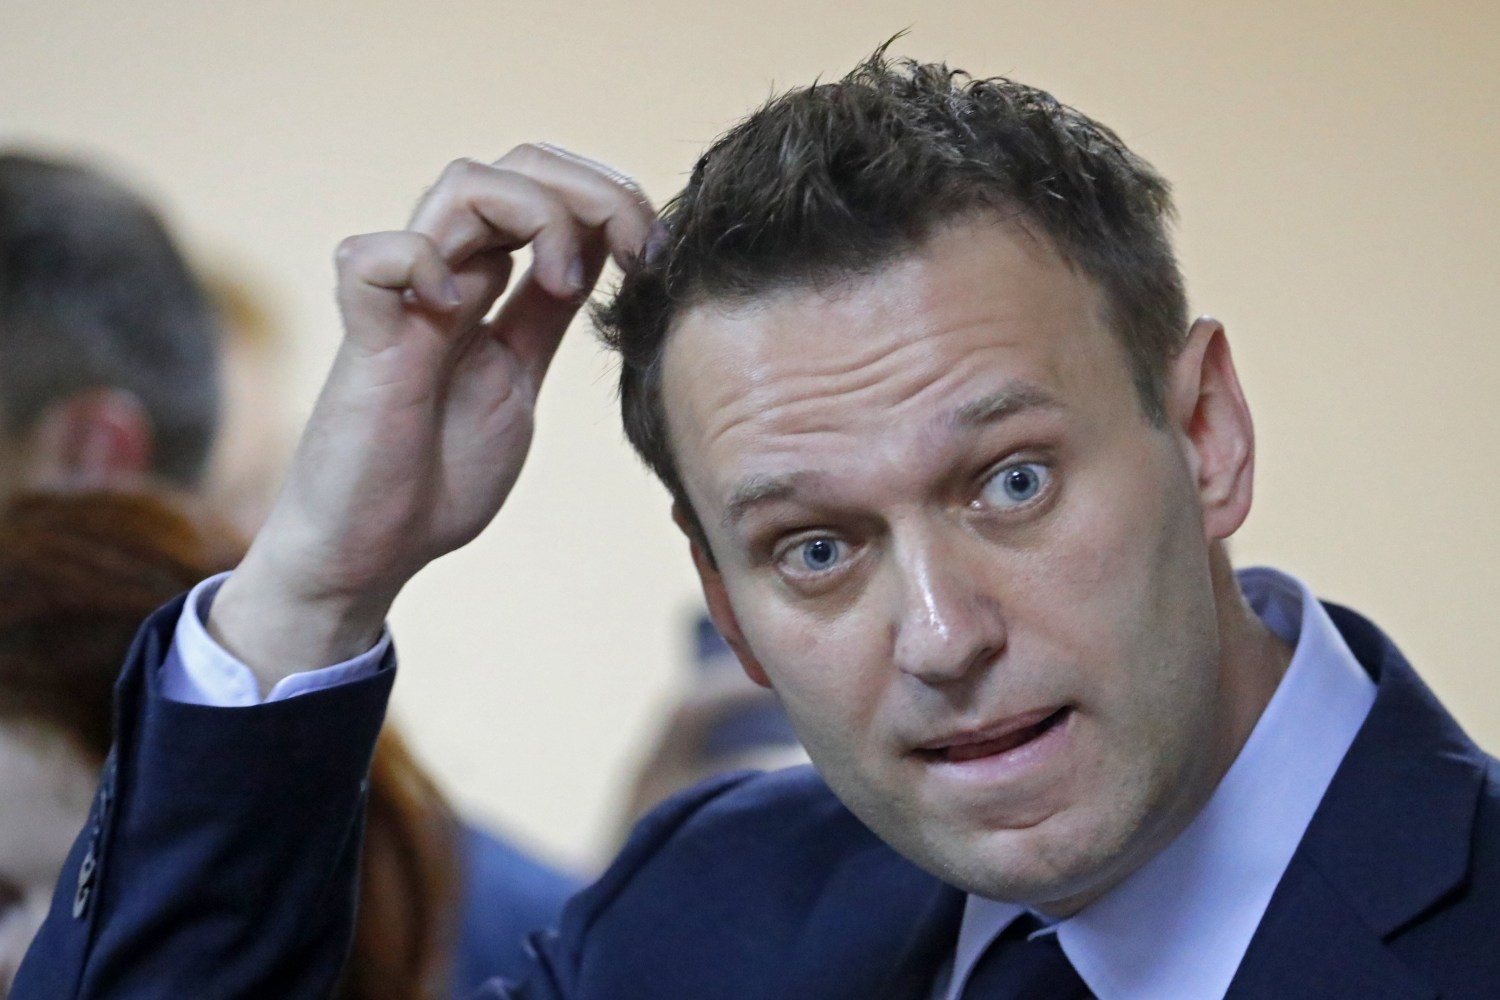 Russian opposition leader Navalny detained ahead of protest